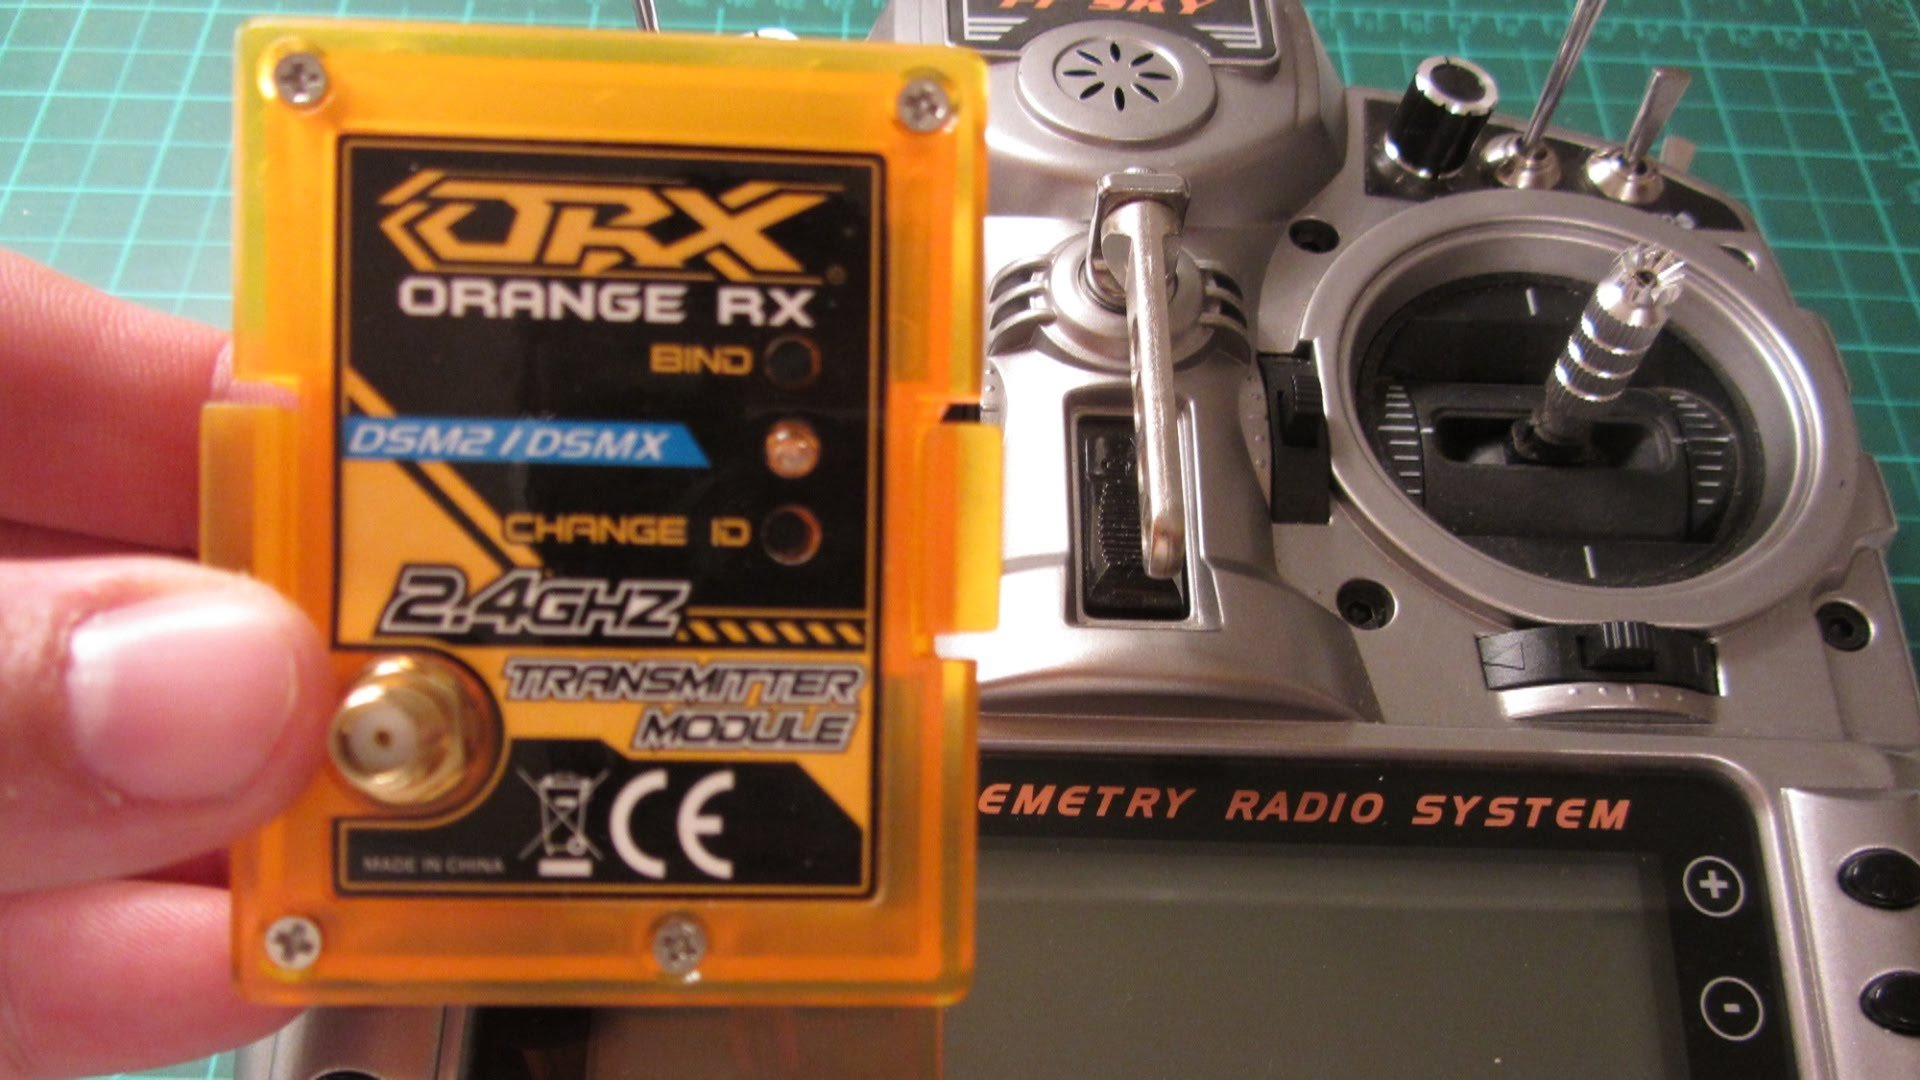 DEFINITIVE GUIDE ON HOW TO SELECT THE TRANSMITTER AND RADIO RECEIVER